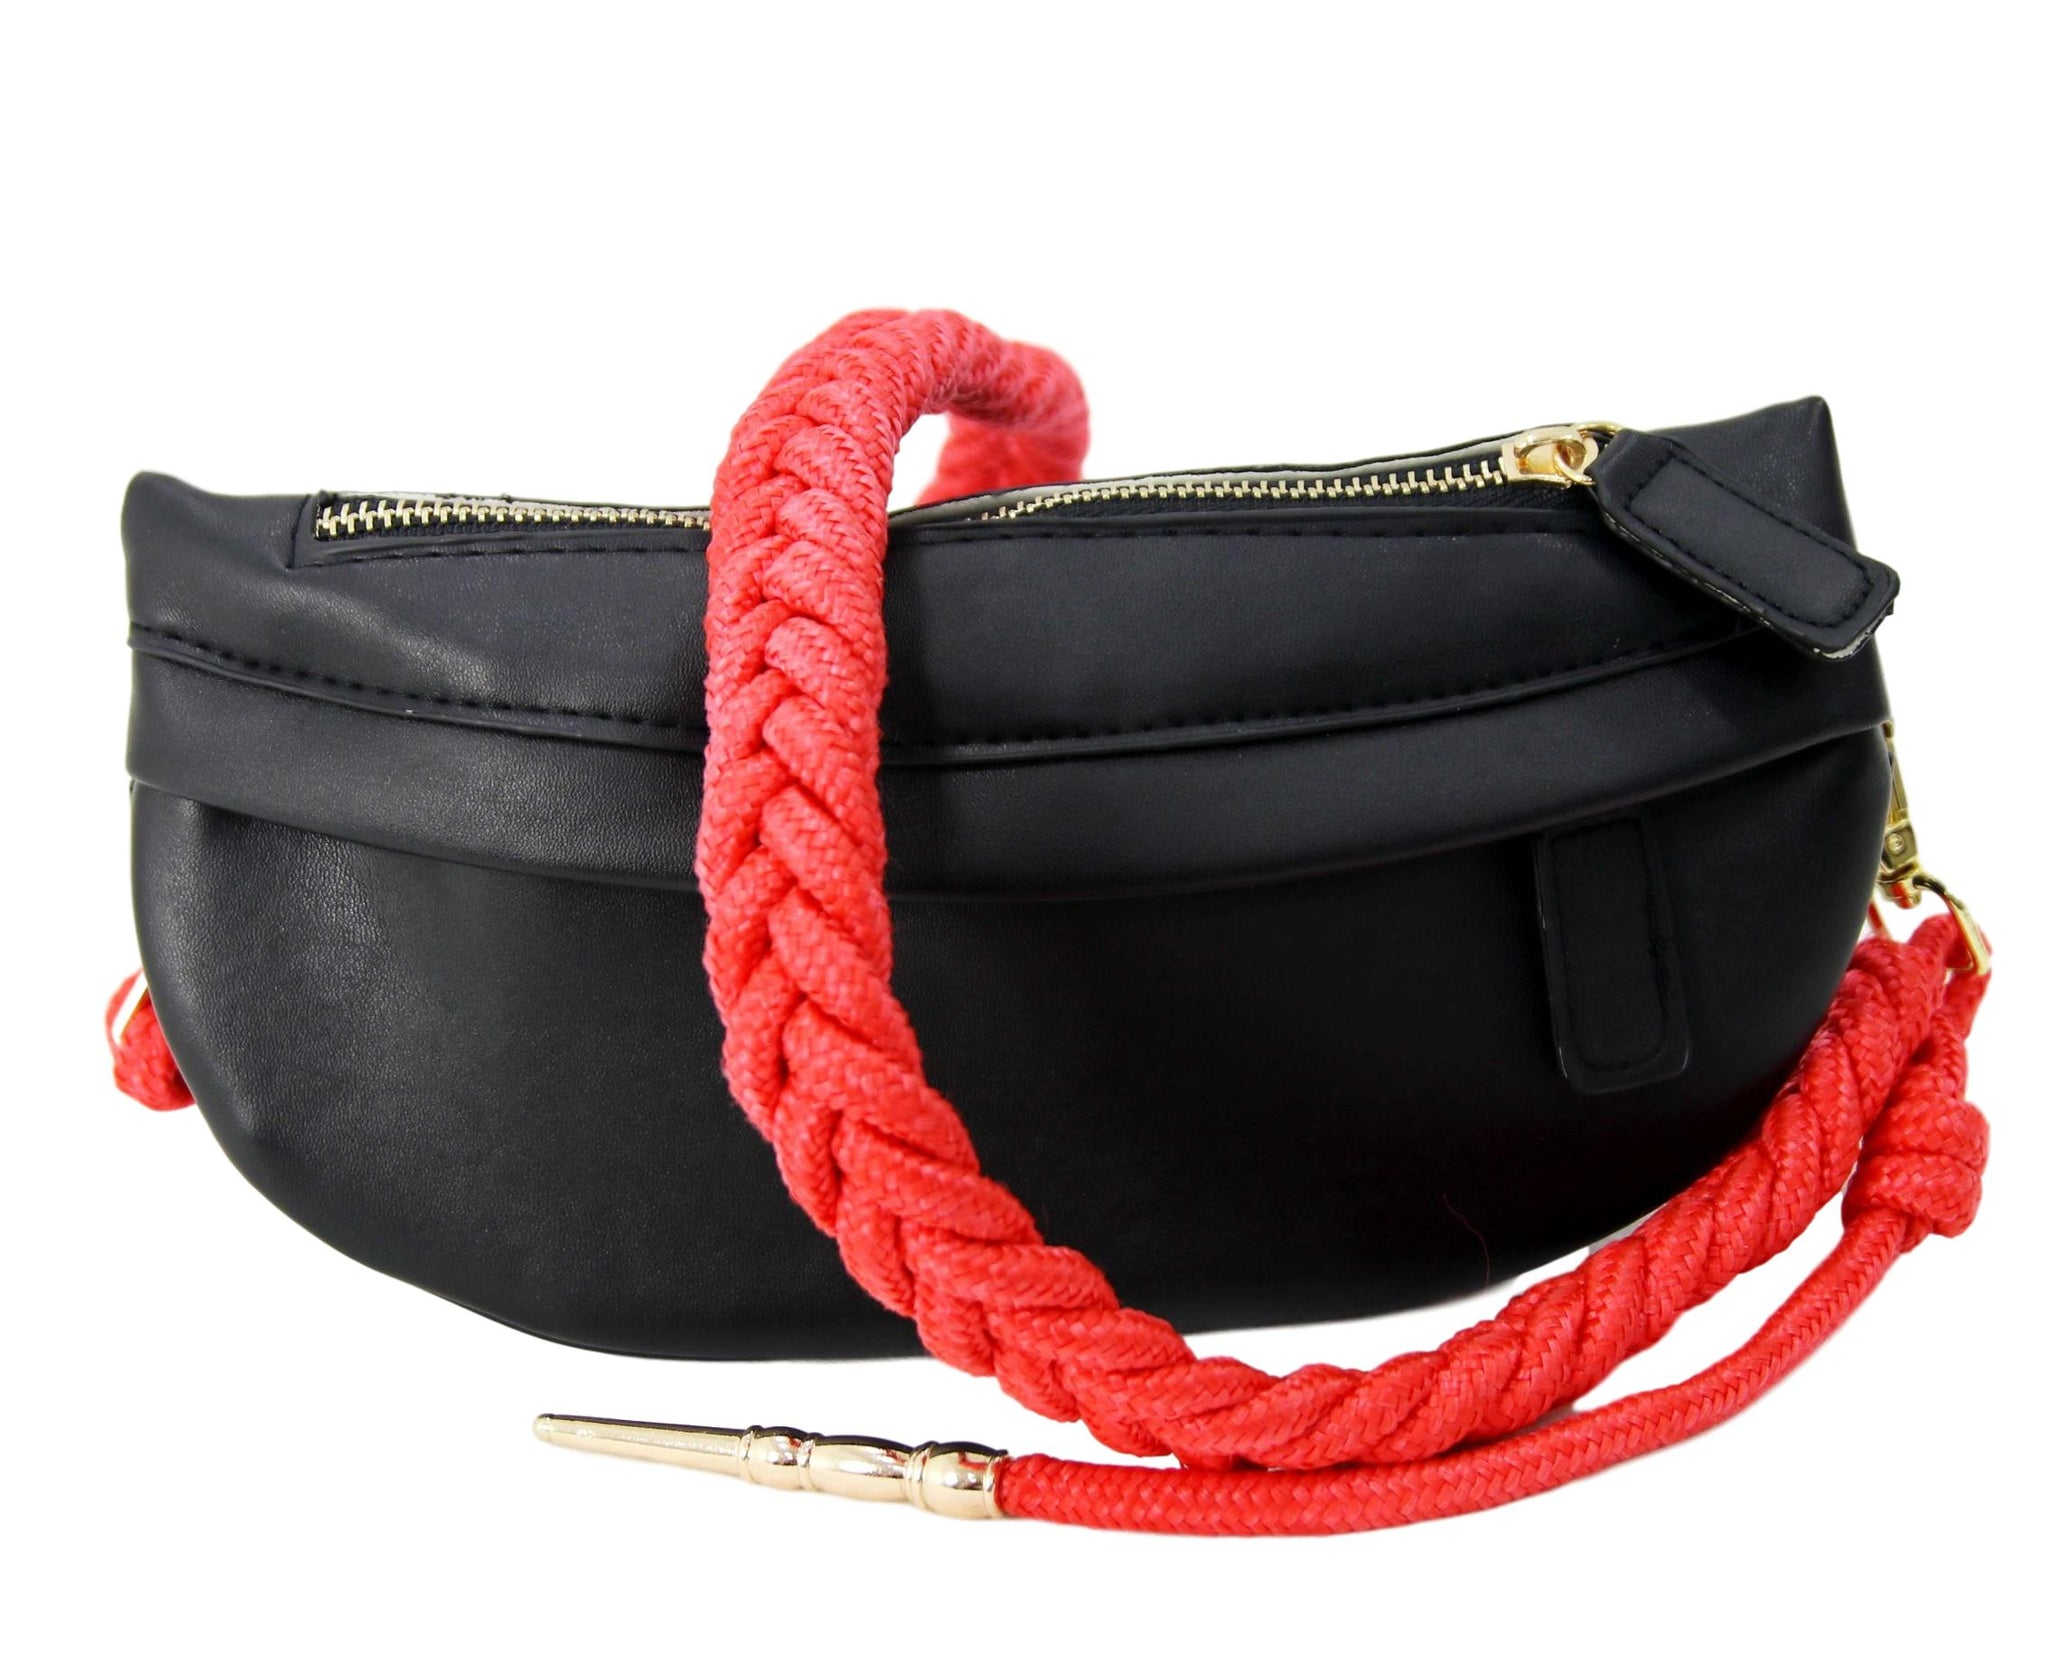 Red Faux Leather (PU) Bum Bag with Rope Strap